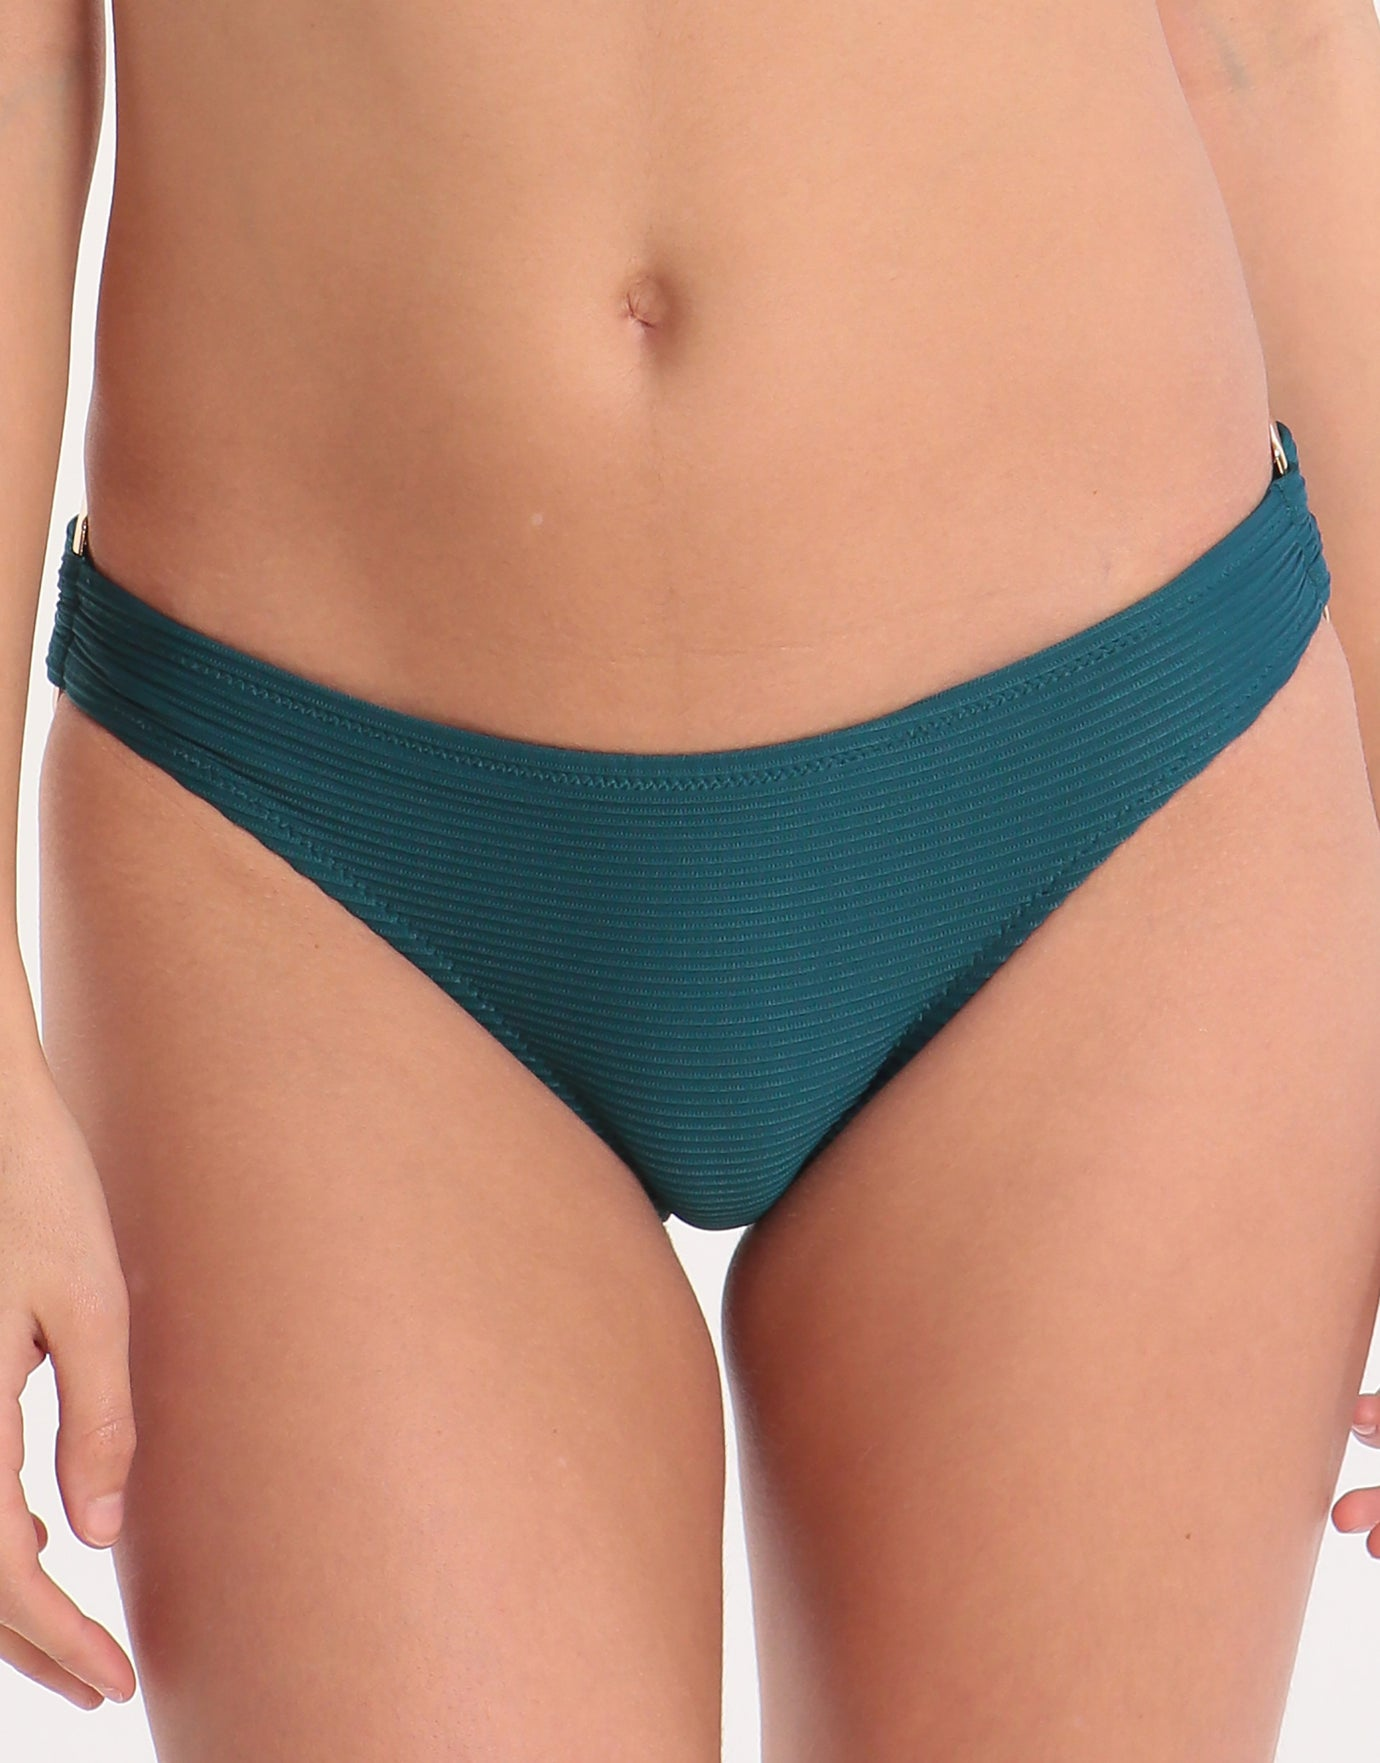 Heidi Klein Ubud Rectangle Bikini Bottom - Teal